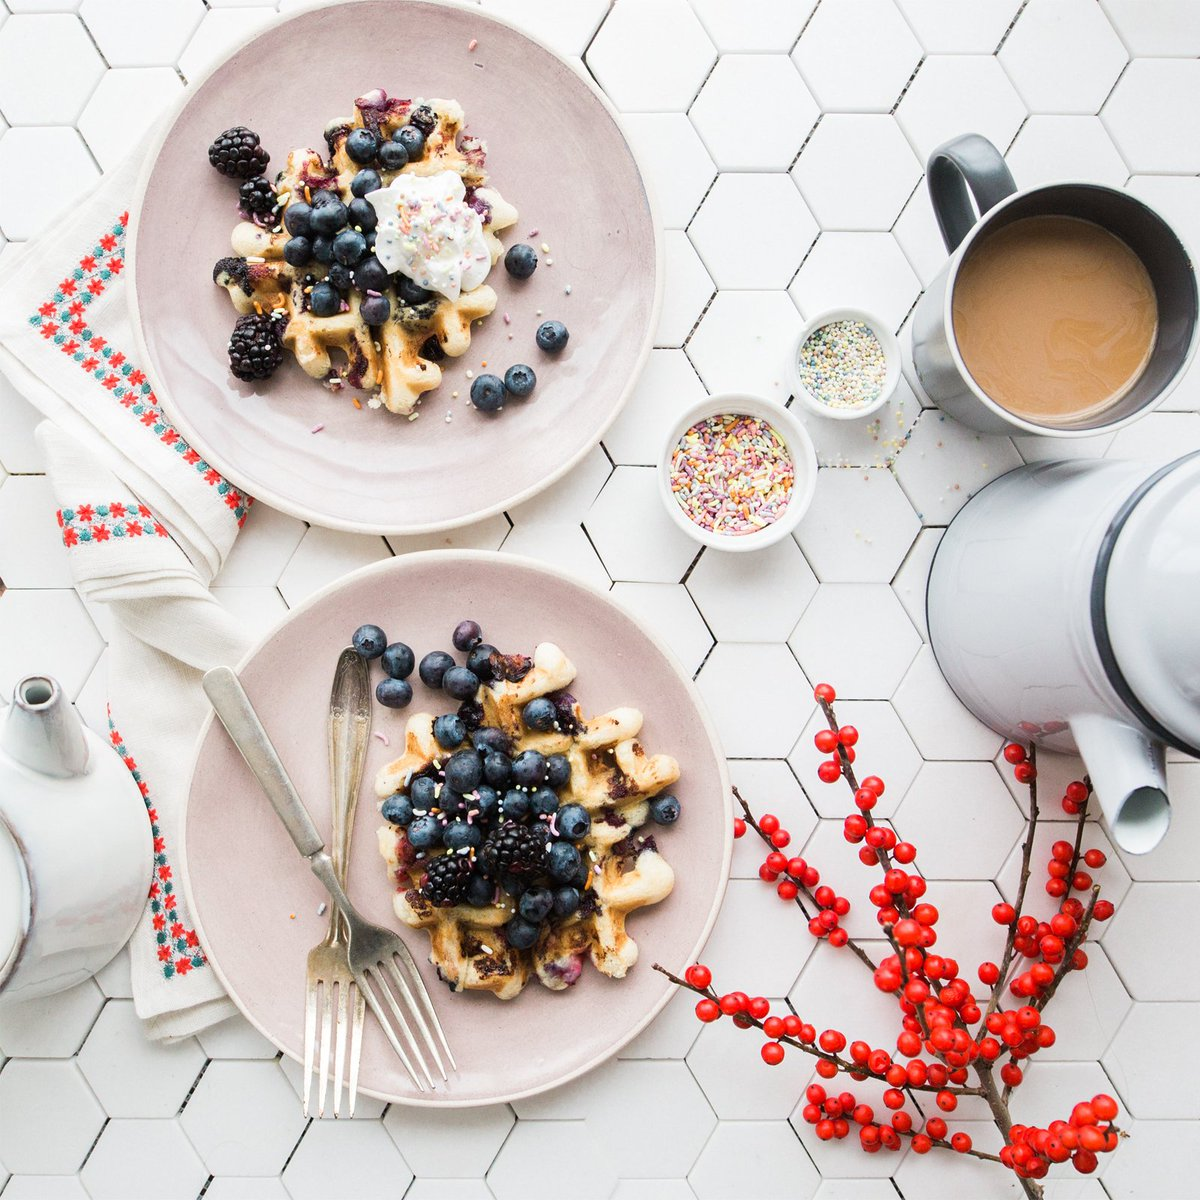 Waking up early to the smell of coffee and waffles is, perhaps, the finest of all simple pleasures. Pairing fresh fruit with waffles just makes it that much more special. Celebrate National Waffle Day with breakfast essentials from Harmony Co-op. https://t.co/9mjTcMCWgZ